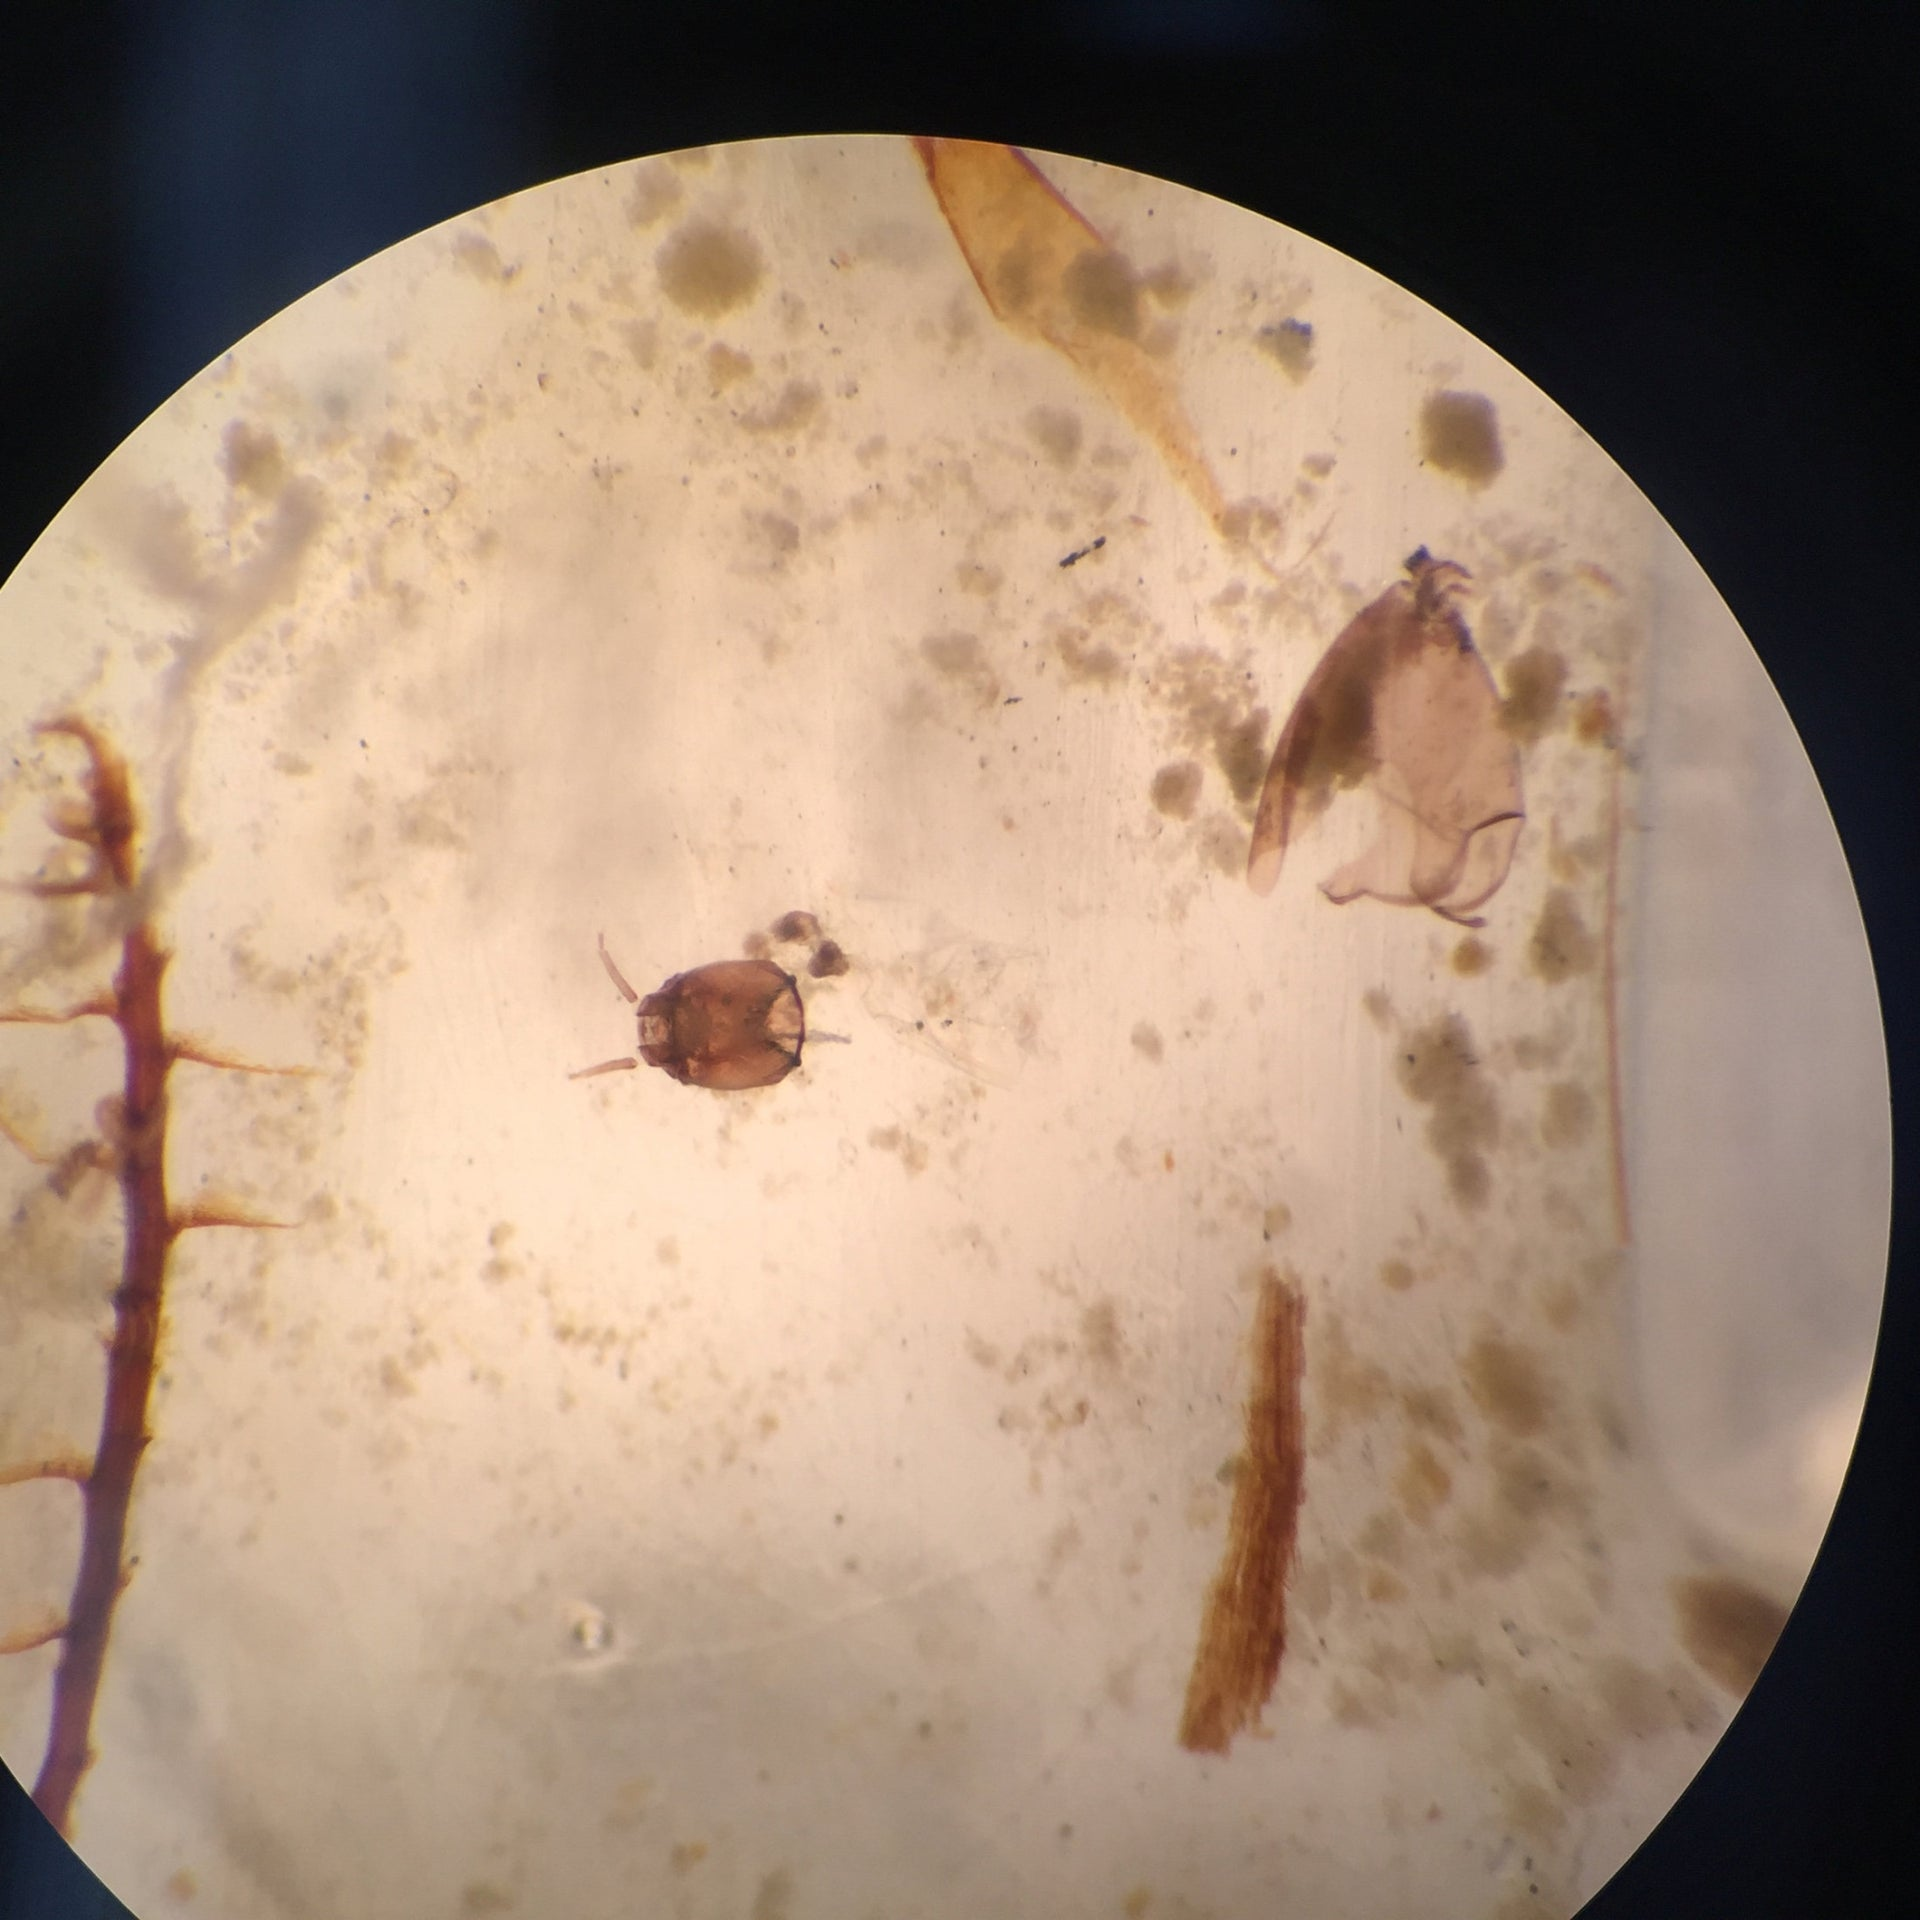 An up-close look at a chironomid's head capsule(center) under a microscope.The Northwestern team isolates these exoskeletons from sediment cores collected in southern Greenland for oxygen isotope analysis.